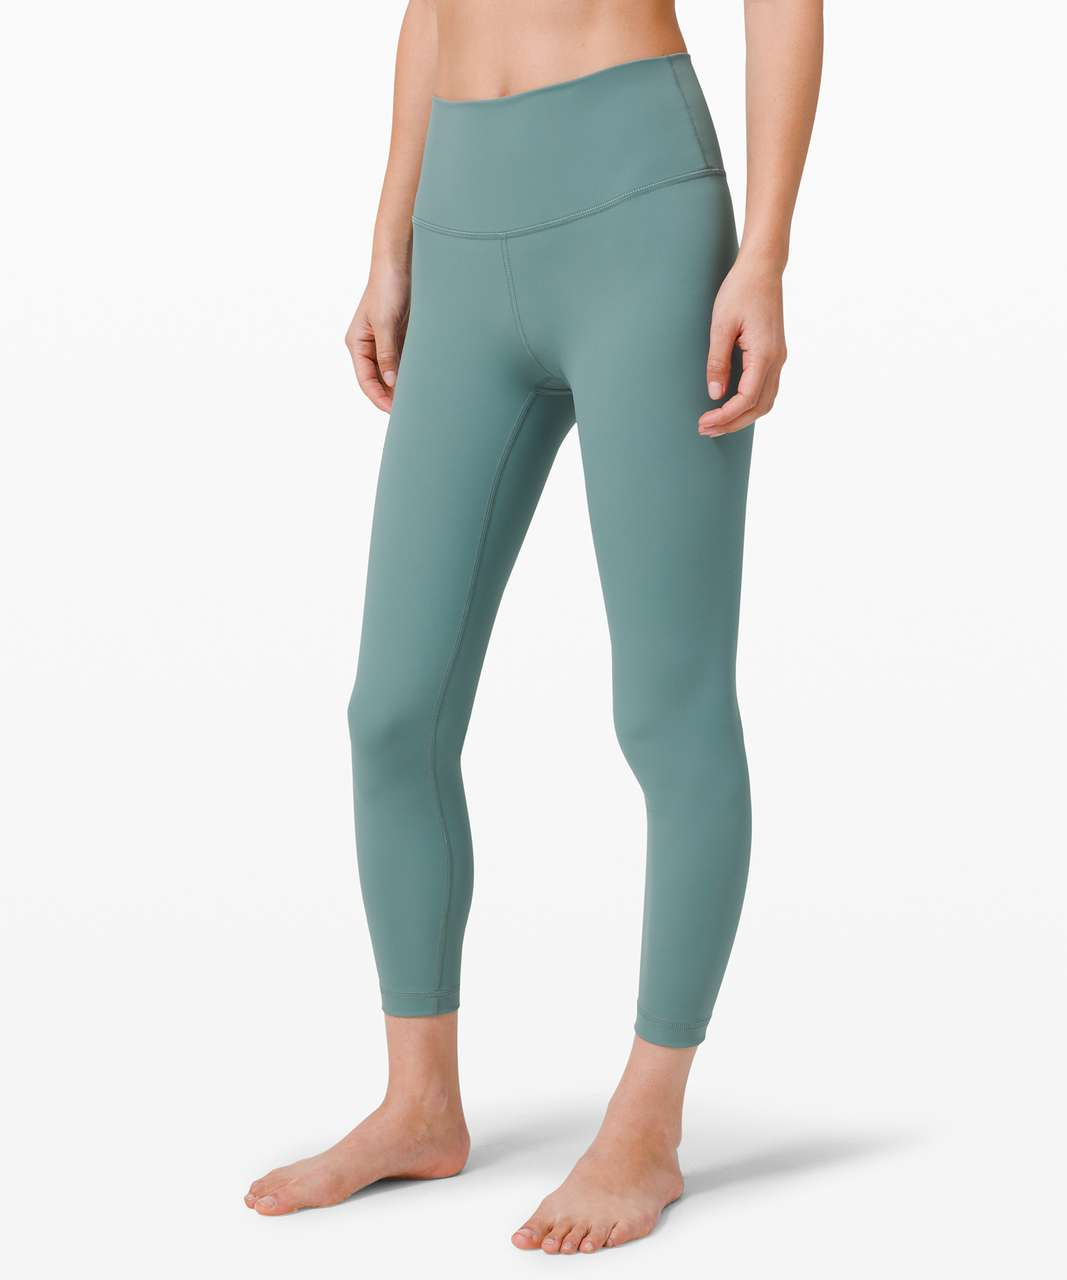 "Lululemon Wunder Under High-Rise Tight 25"" *Luxtreme - Tidewater Teal"